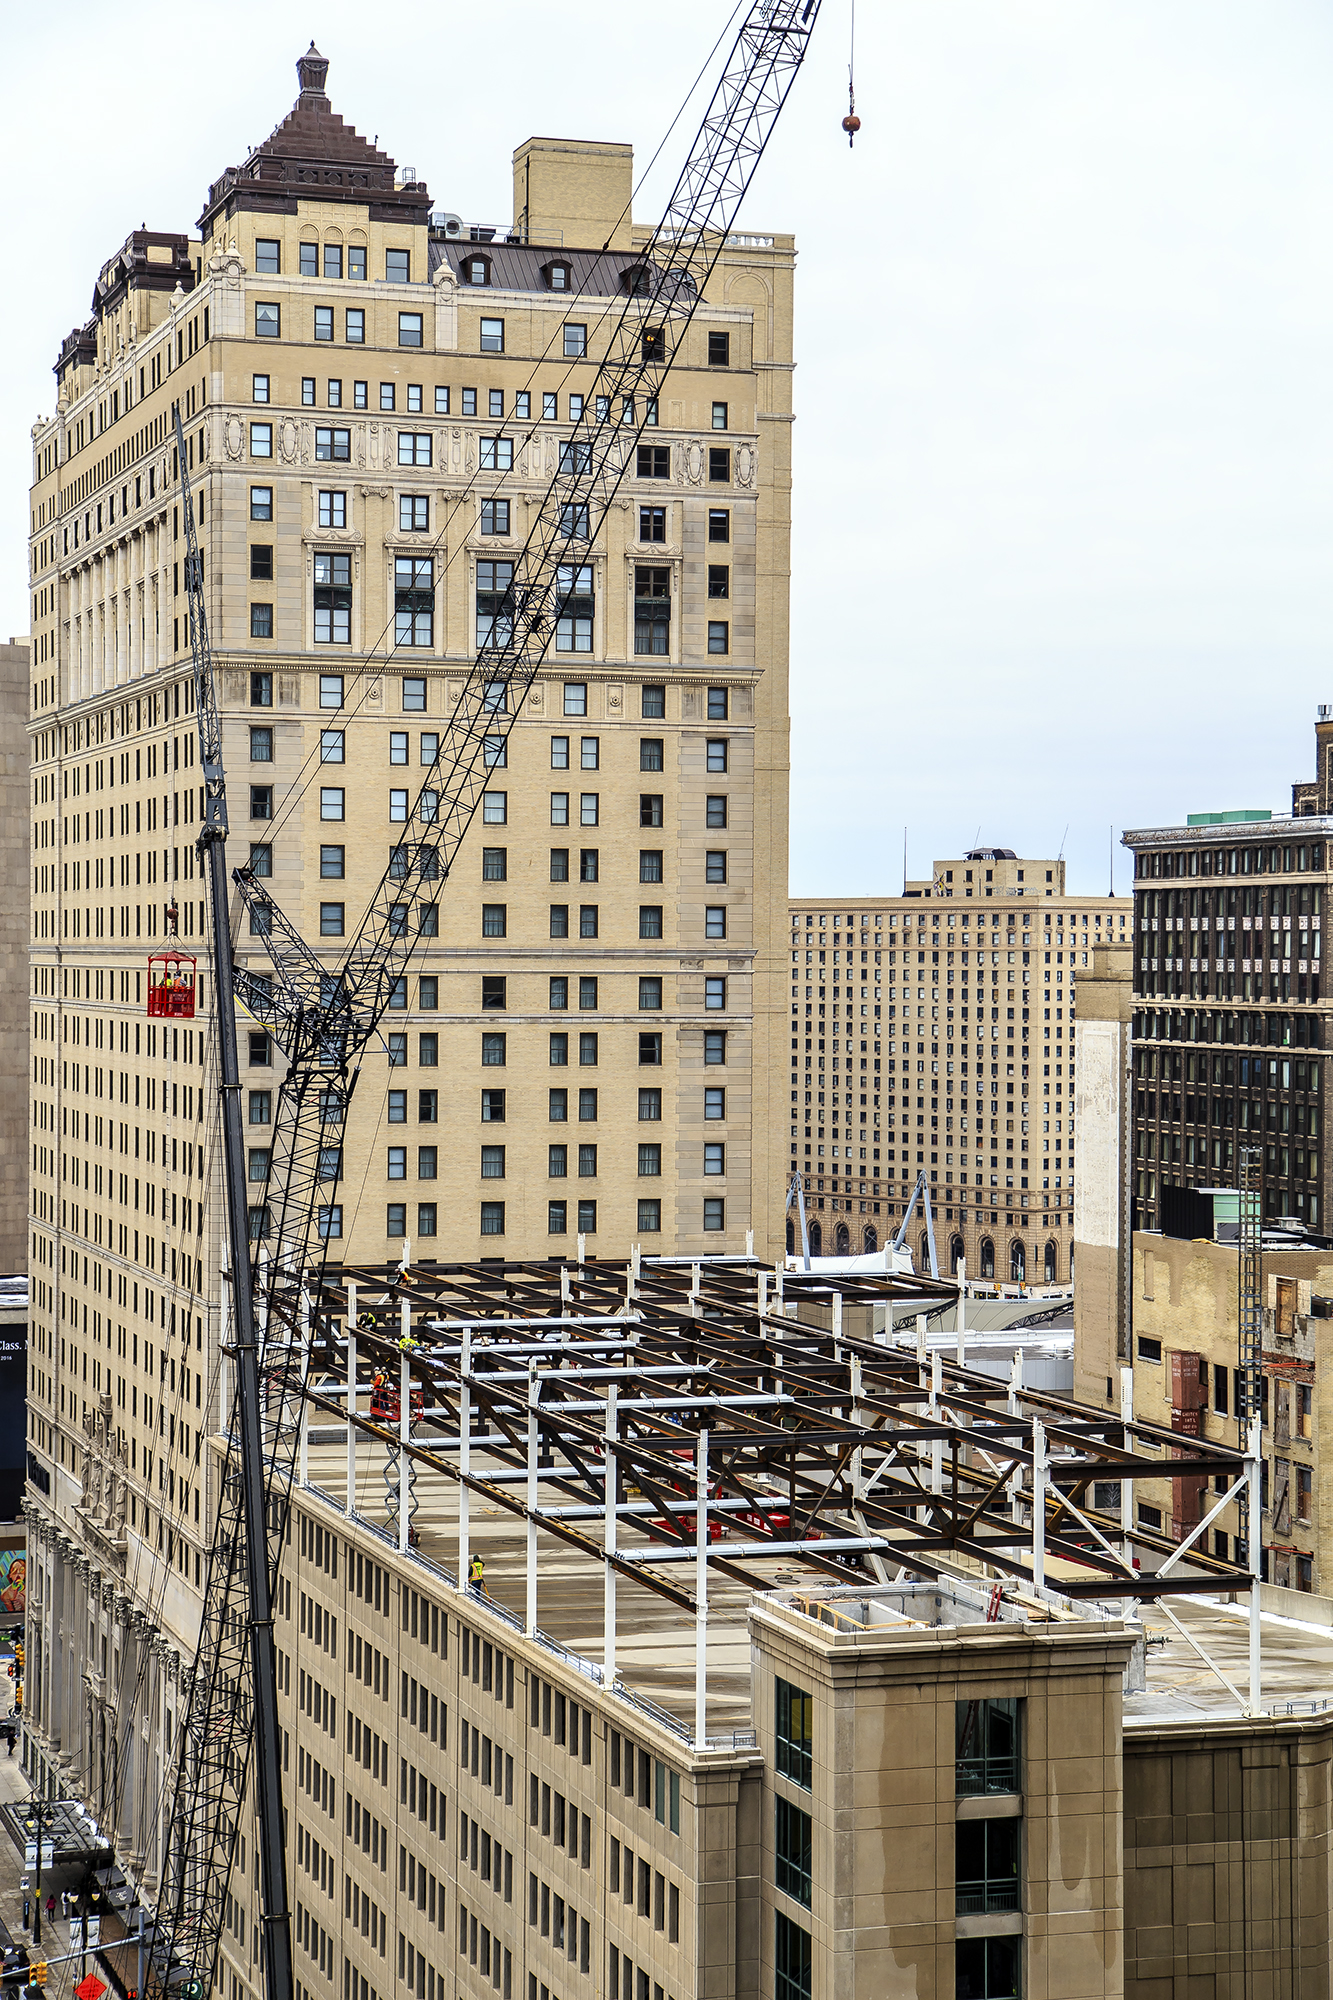 Lofty 'The Griswold' project rises atop parking structure